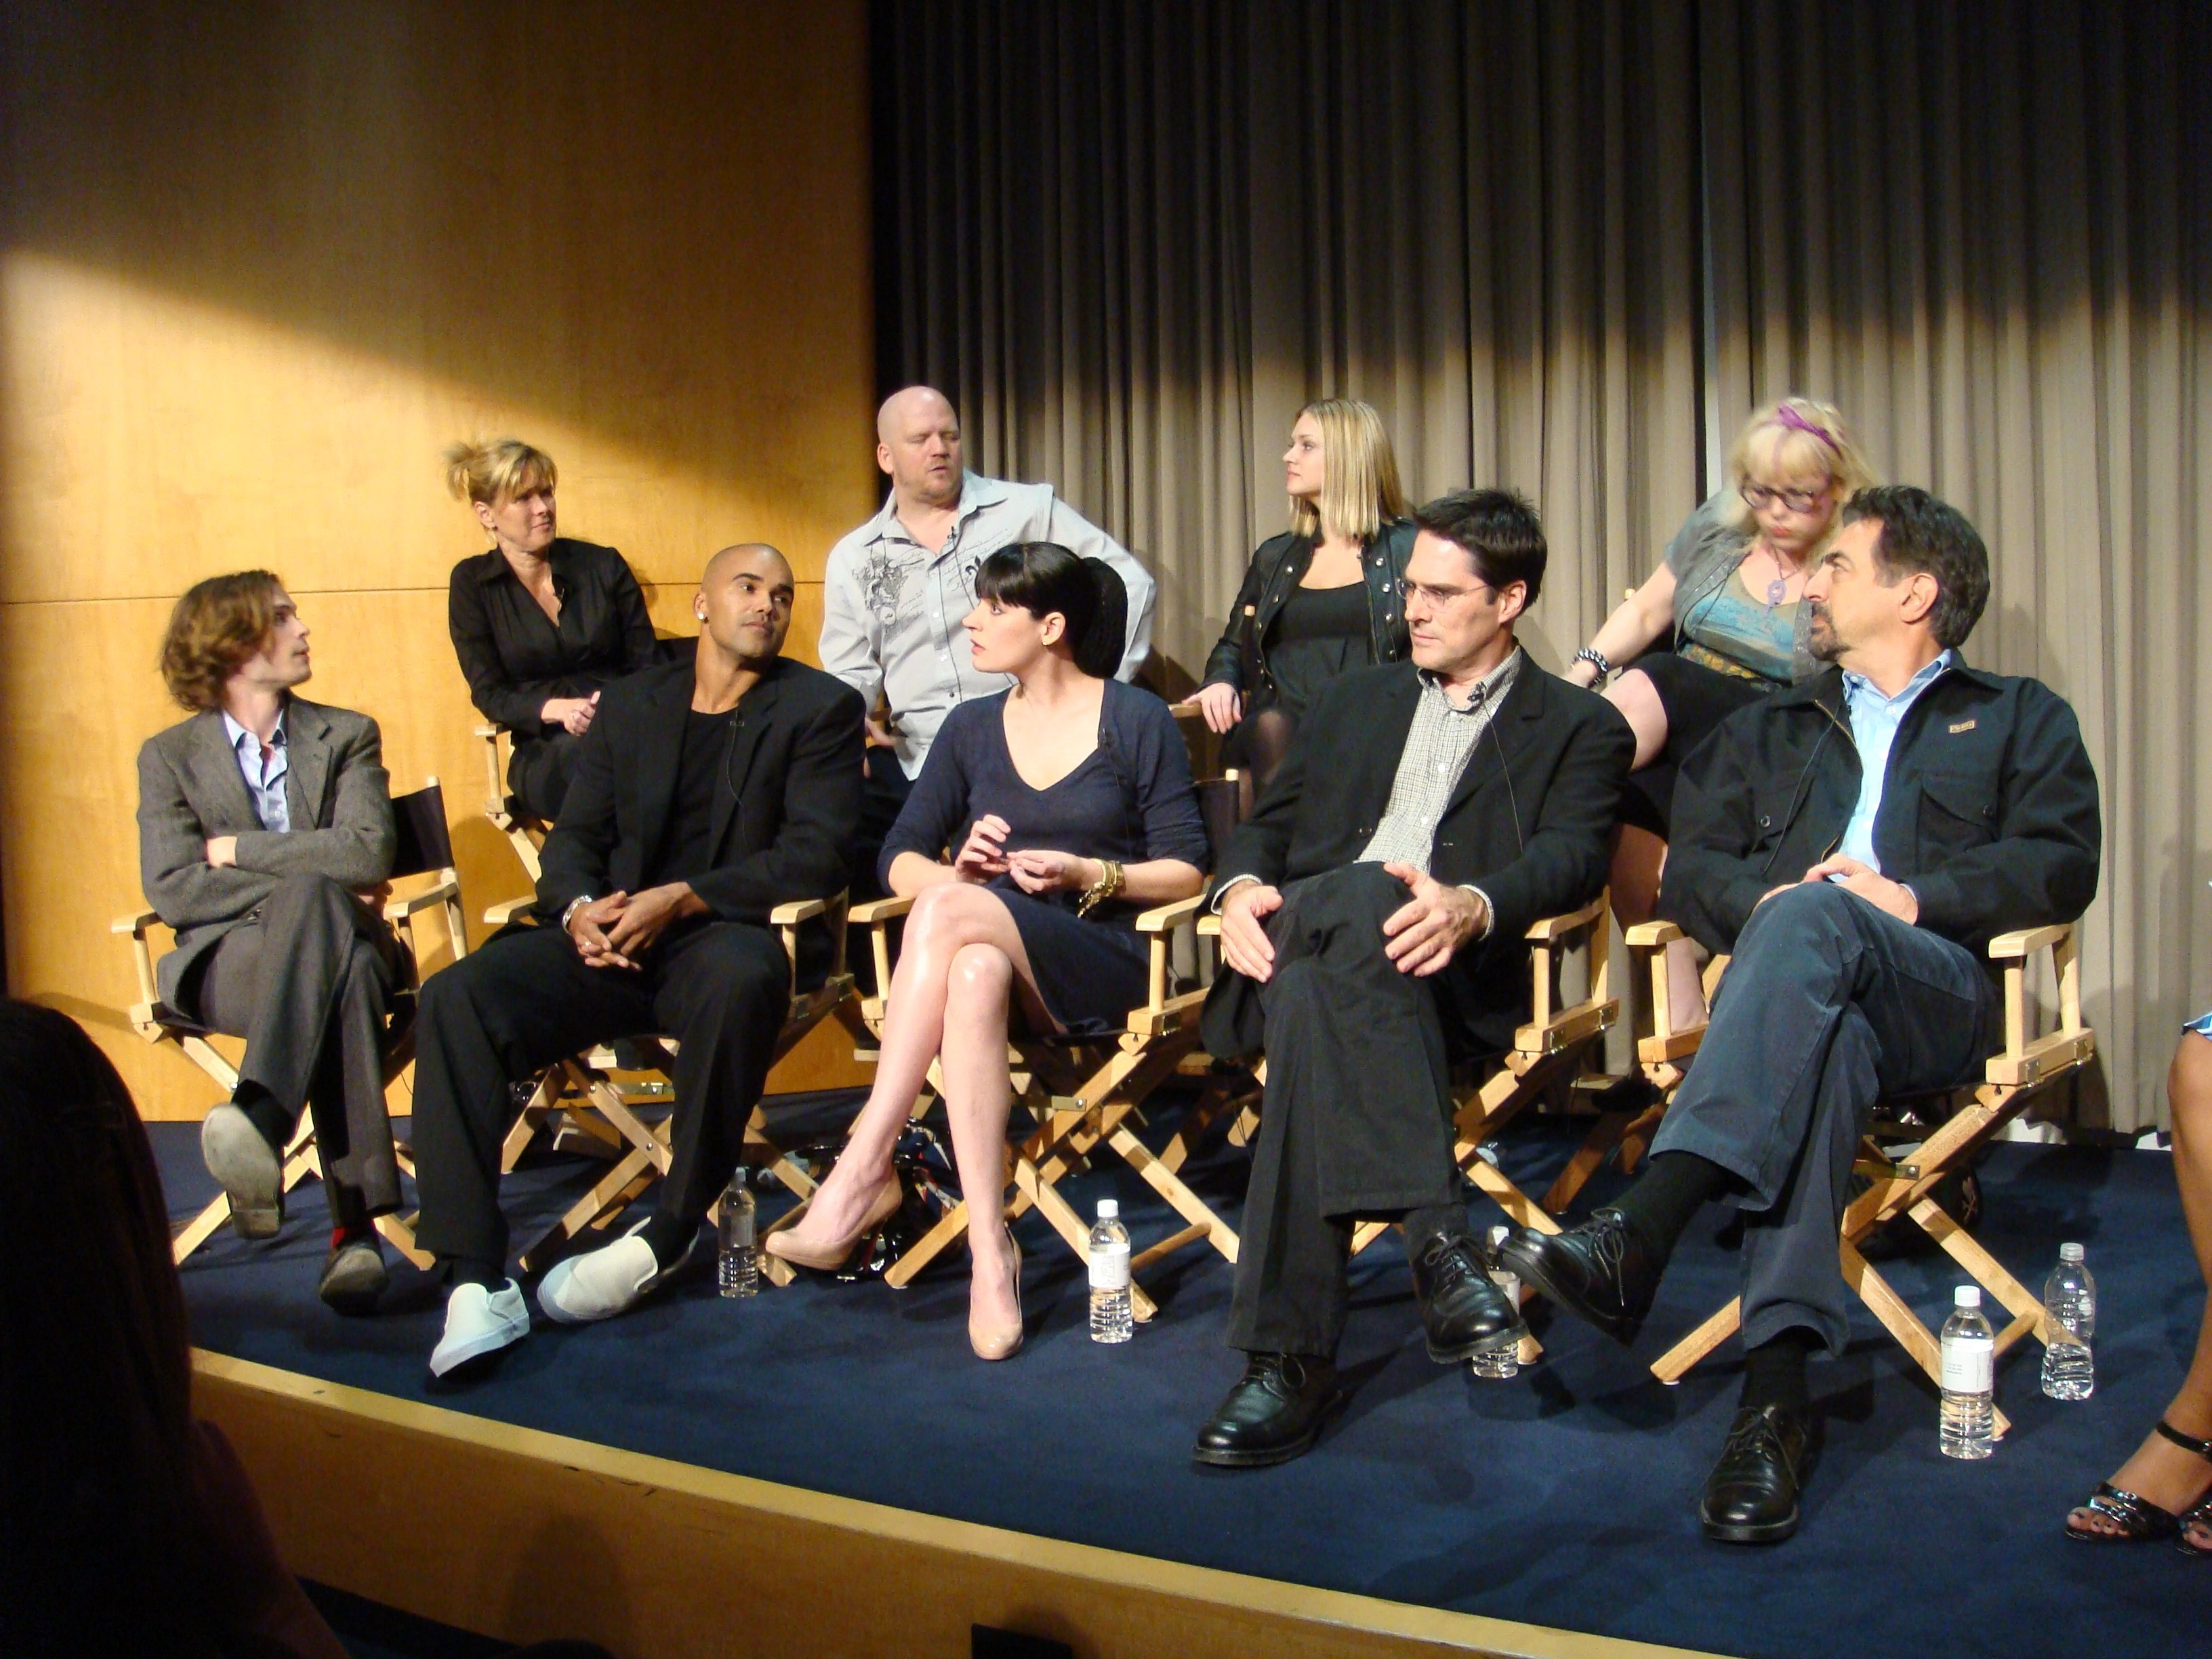 The cast of Criminal Minds at the Paley Center | Source: etrainer/ Wikimedia Commons